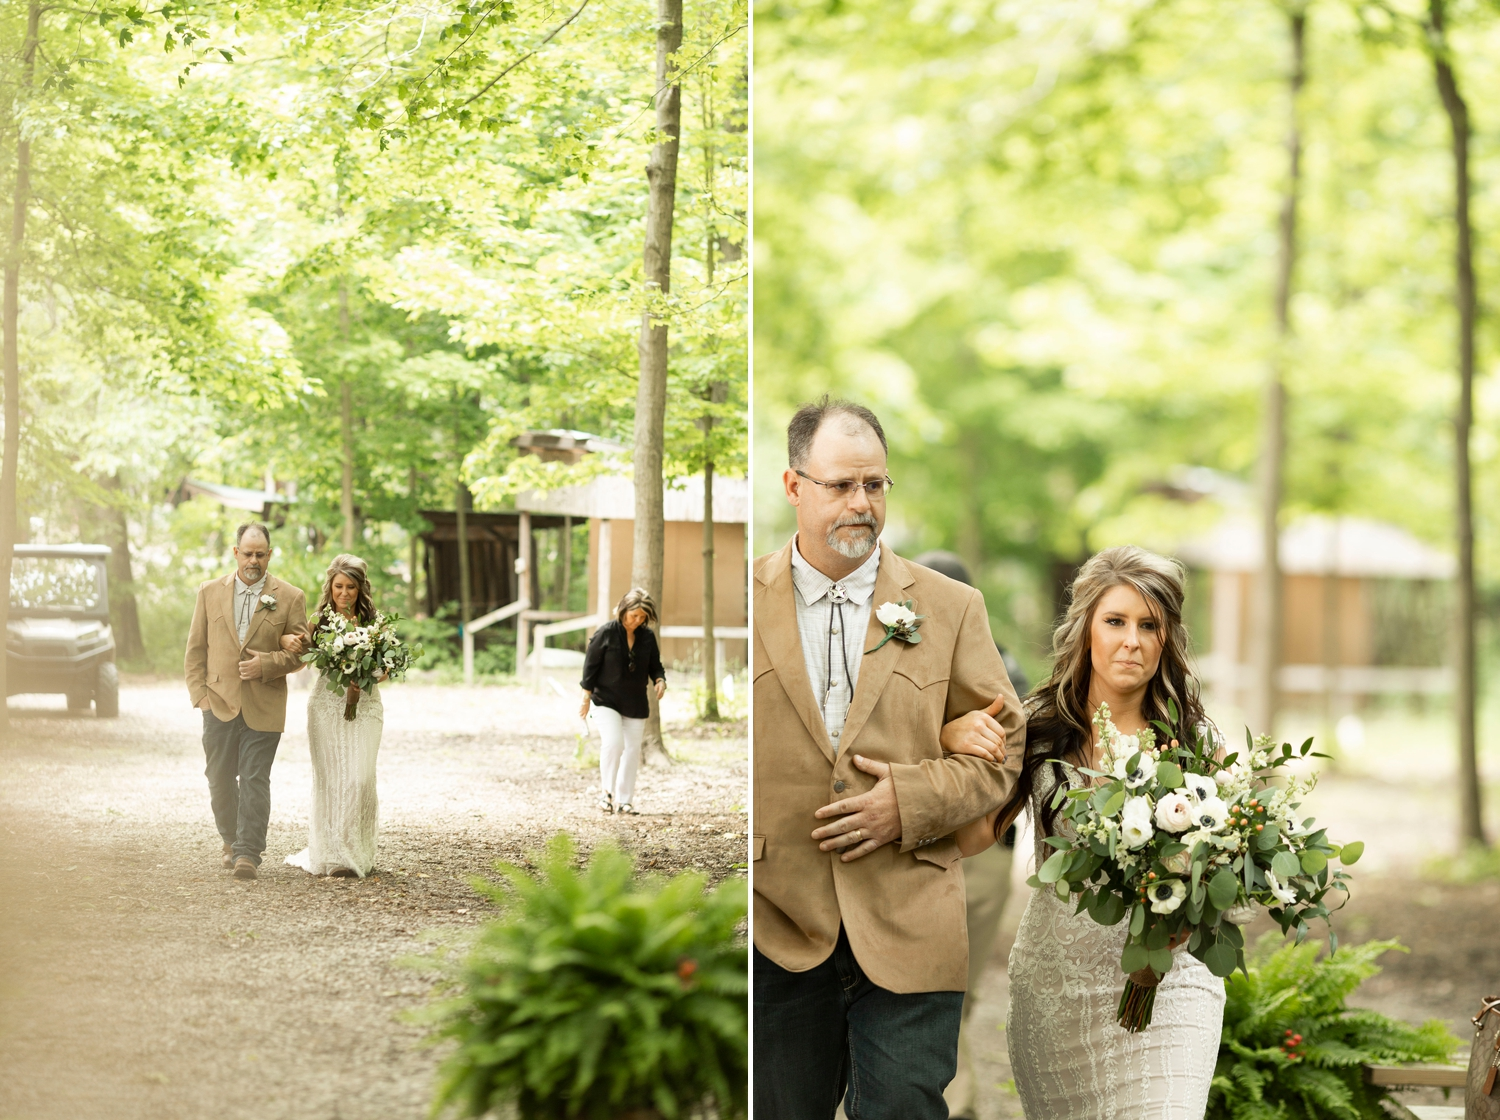 The Flowerman, bride walking down aisle, wedding ceremony, forest ceremony, wedding in forest, Barn at the backwoods, rustic wedding venues, thornville wedding, rustic wedding inspiration, Columbus wedding photographer, columbus wedding photography, country wedding, backwoods wedding, summer wedding